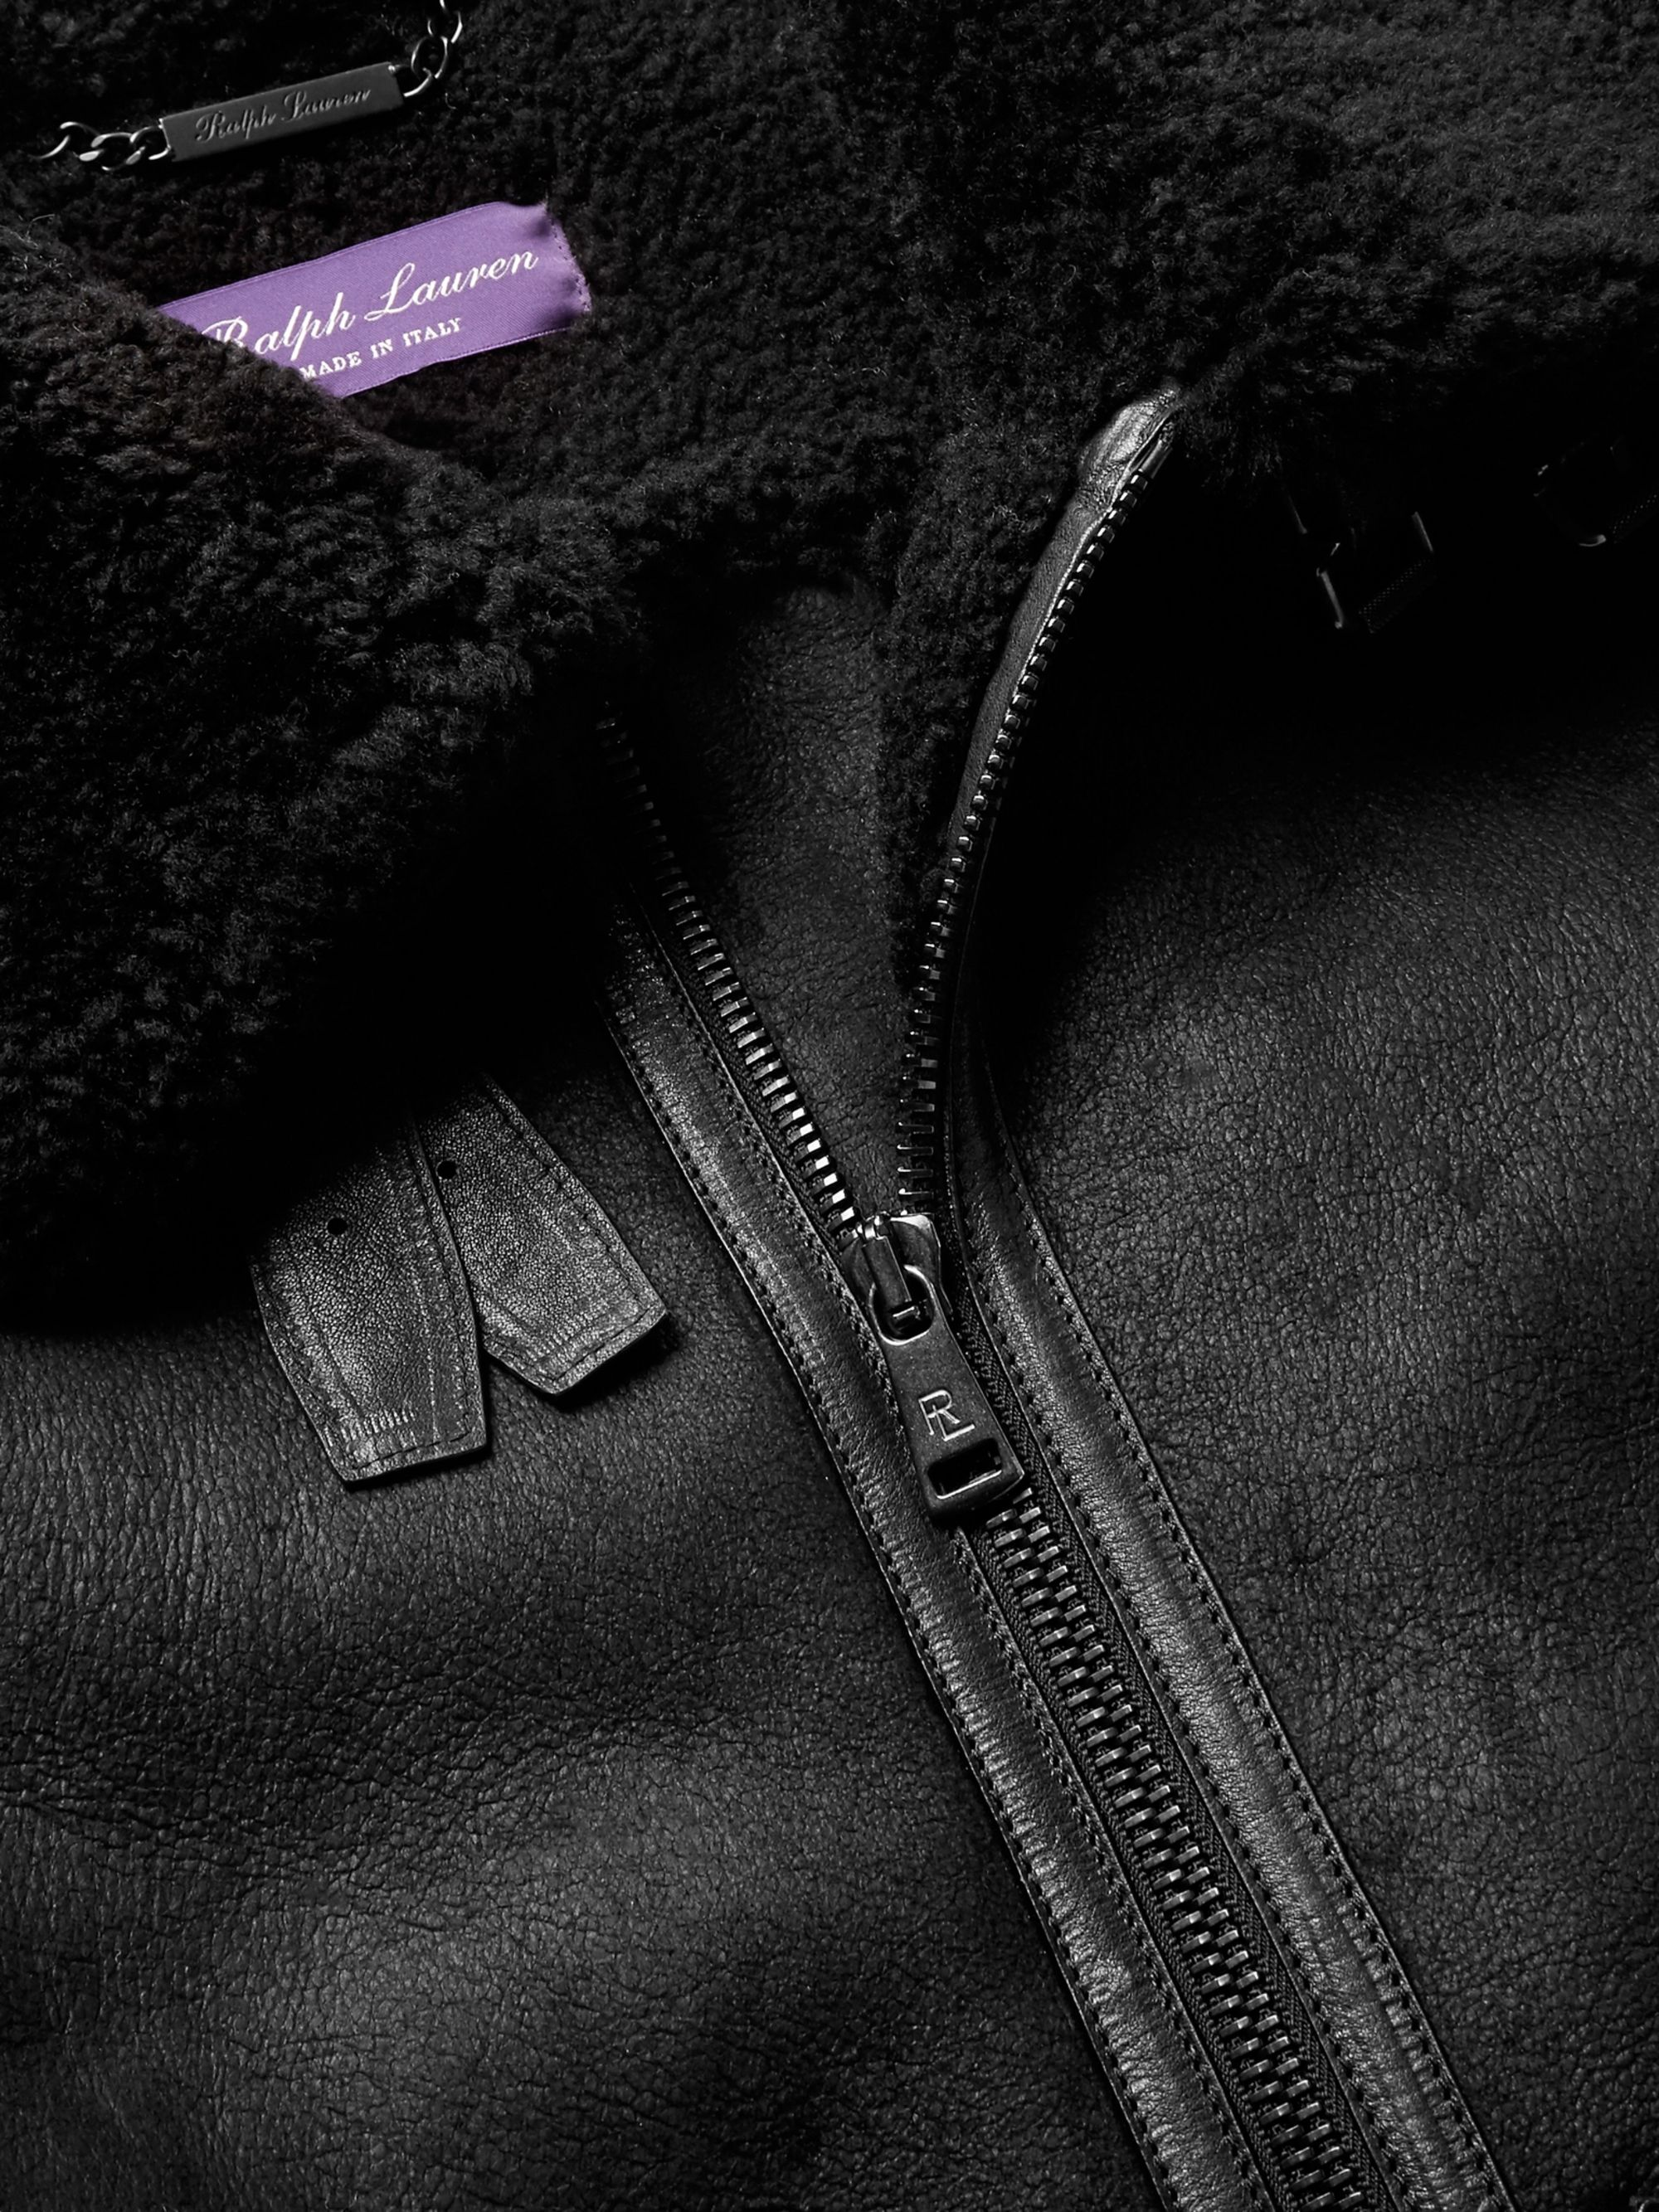 Ralph Lauren Purple Label Shearling Jacket